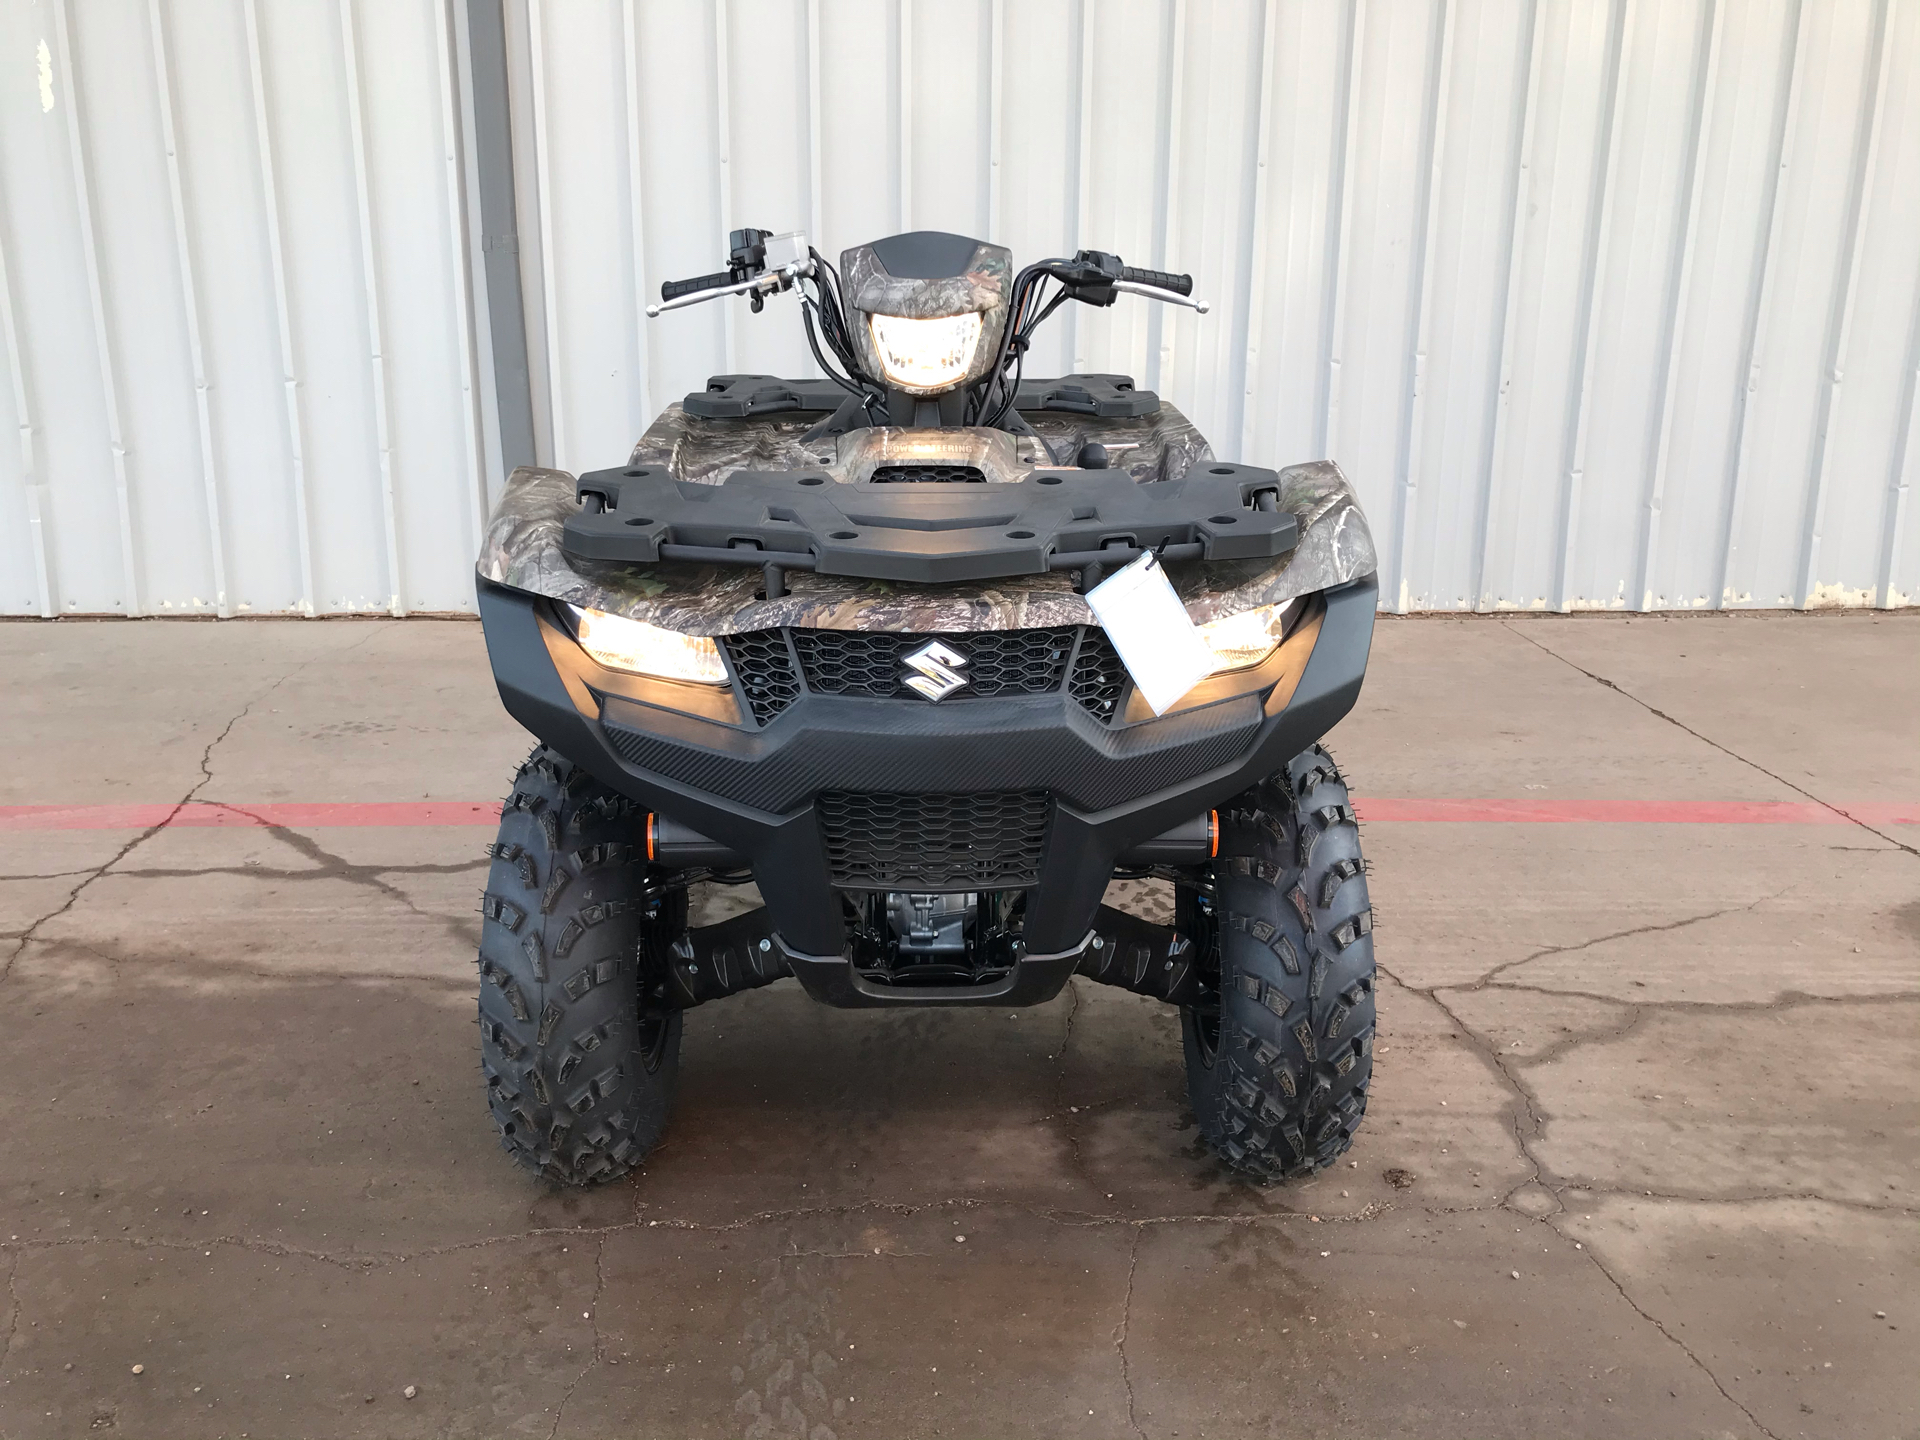 2021 Suzuki KingQuad 750AXi Power Steering SE Camo in Amarillo, Texas - Photo 2